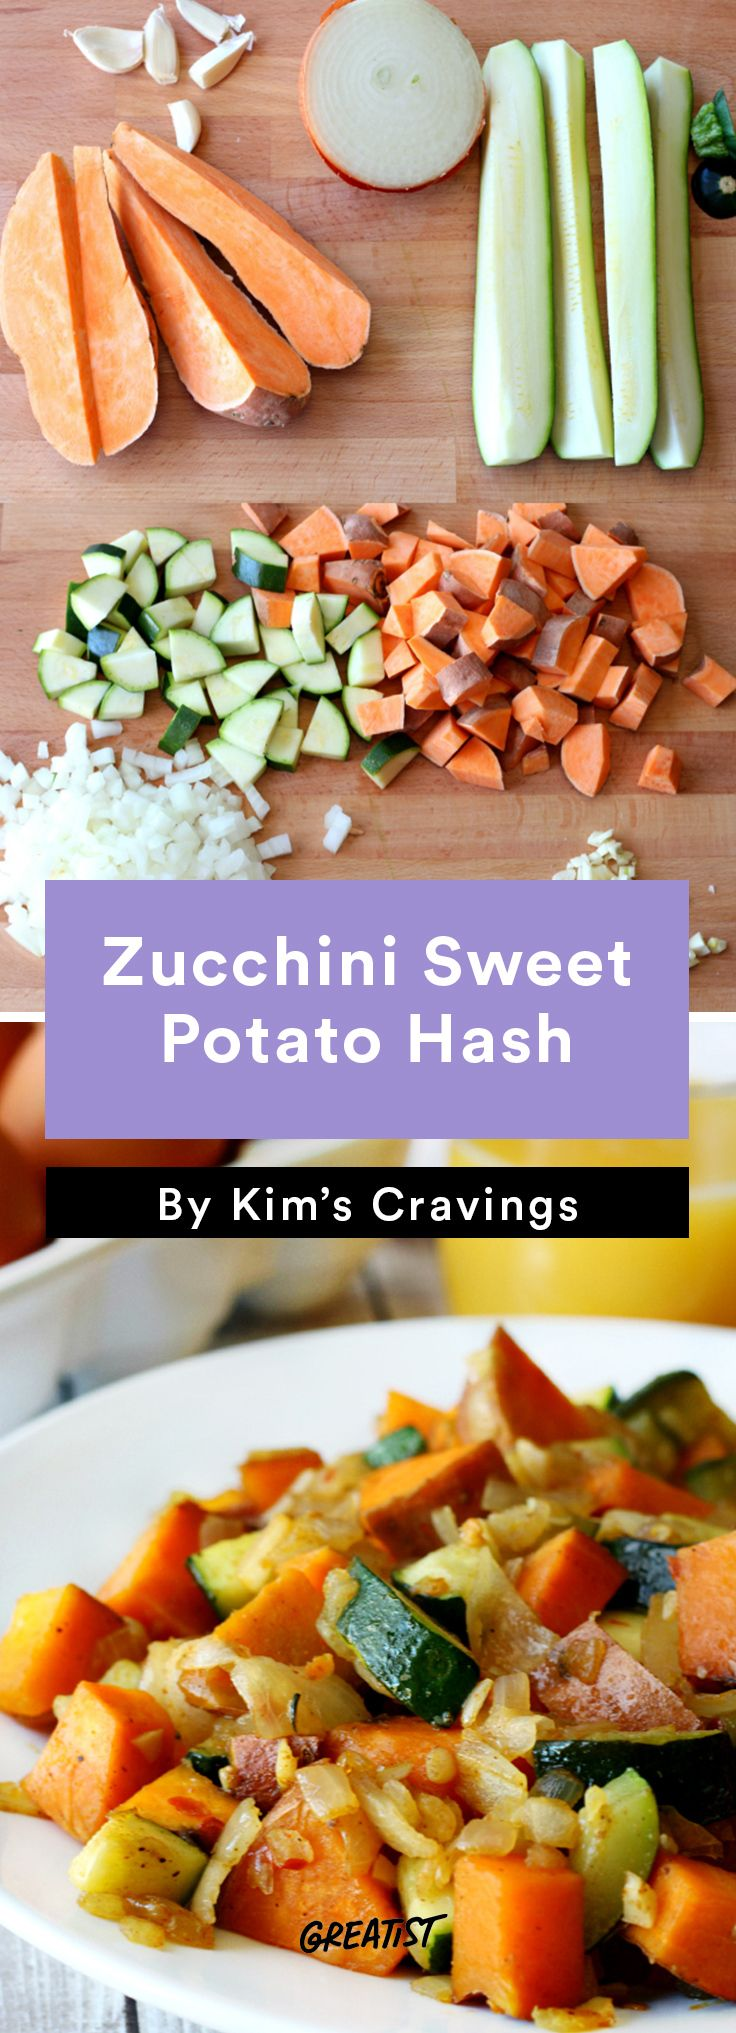 6. Zucchini Sweet Potato Hash #healthy #sweetpotato #hash #recipes http://greatist.com/eat/sweet-potato-hash-recipes-for-breakfast-or-dinner